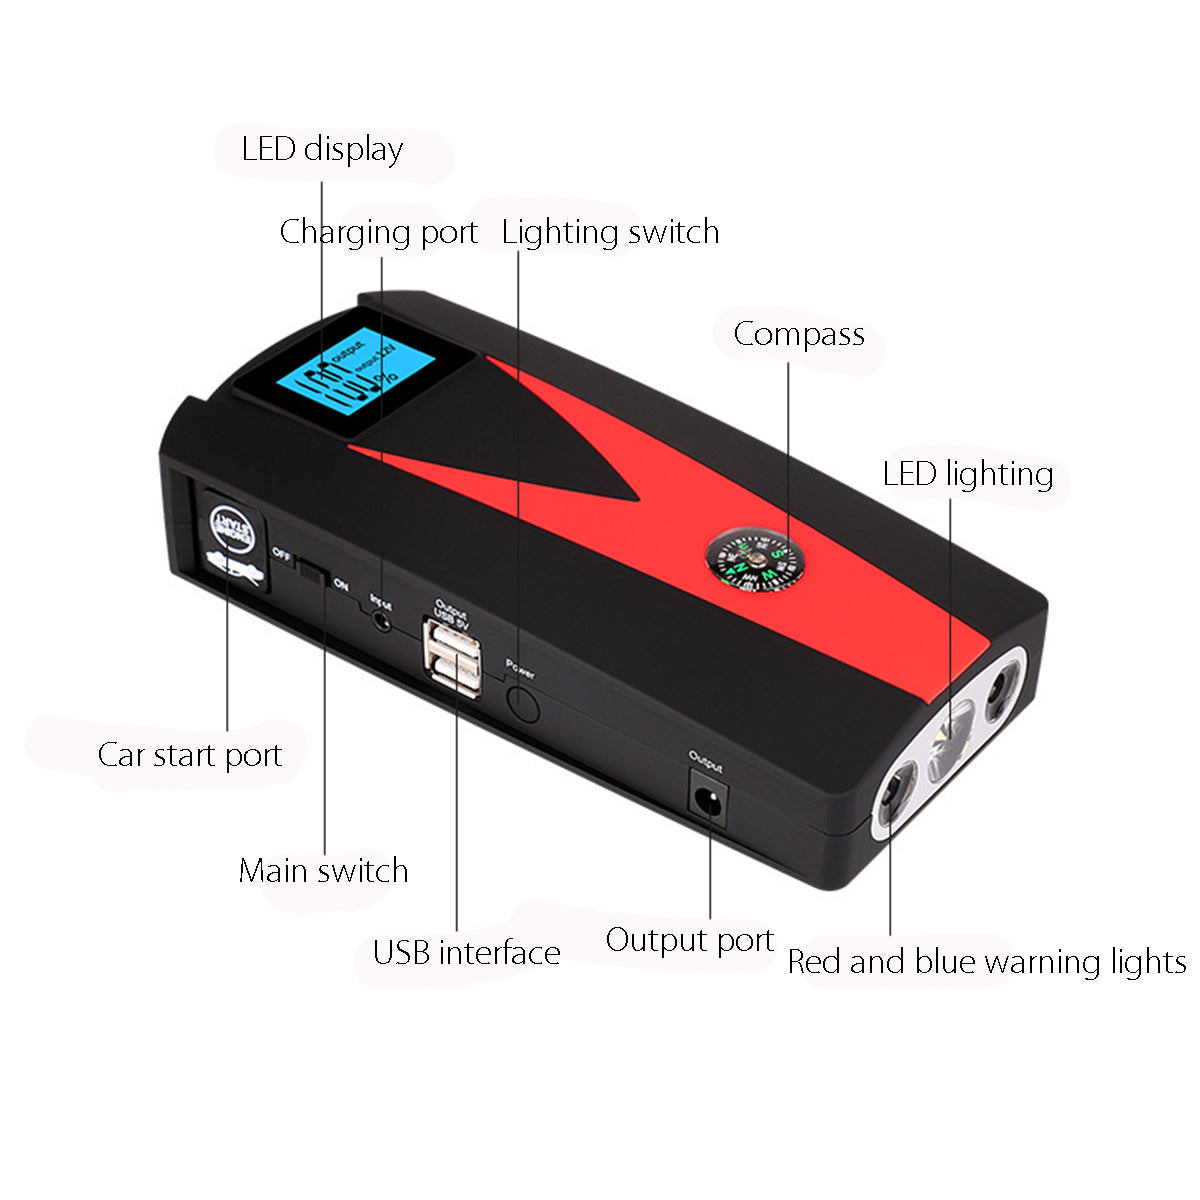 Skyorium 99900 mAh Dual USB Car Jump Starter LCD Auto Battery Booster Portable Power Pack with Jumper Cables - US Plug